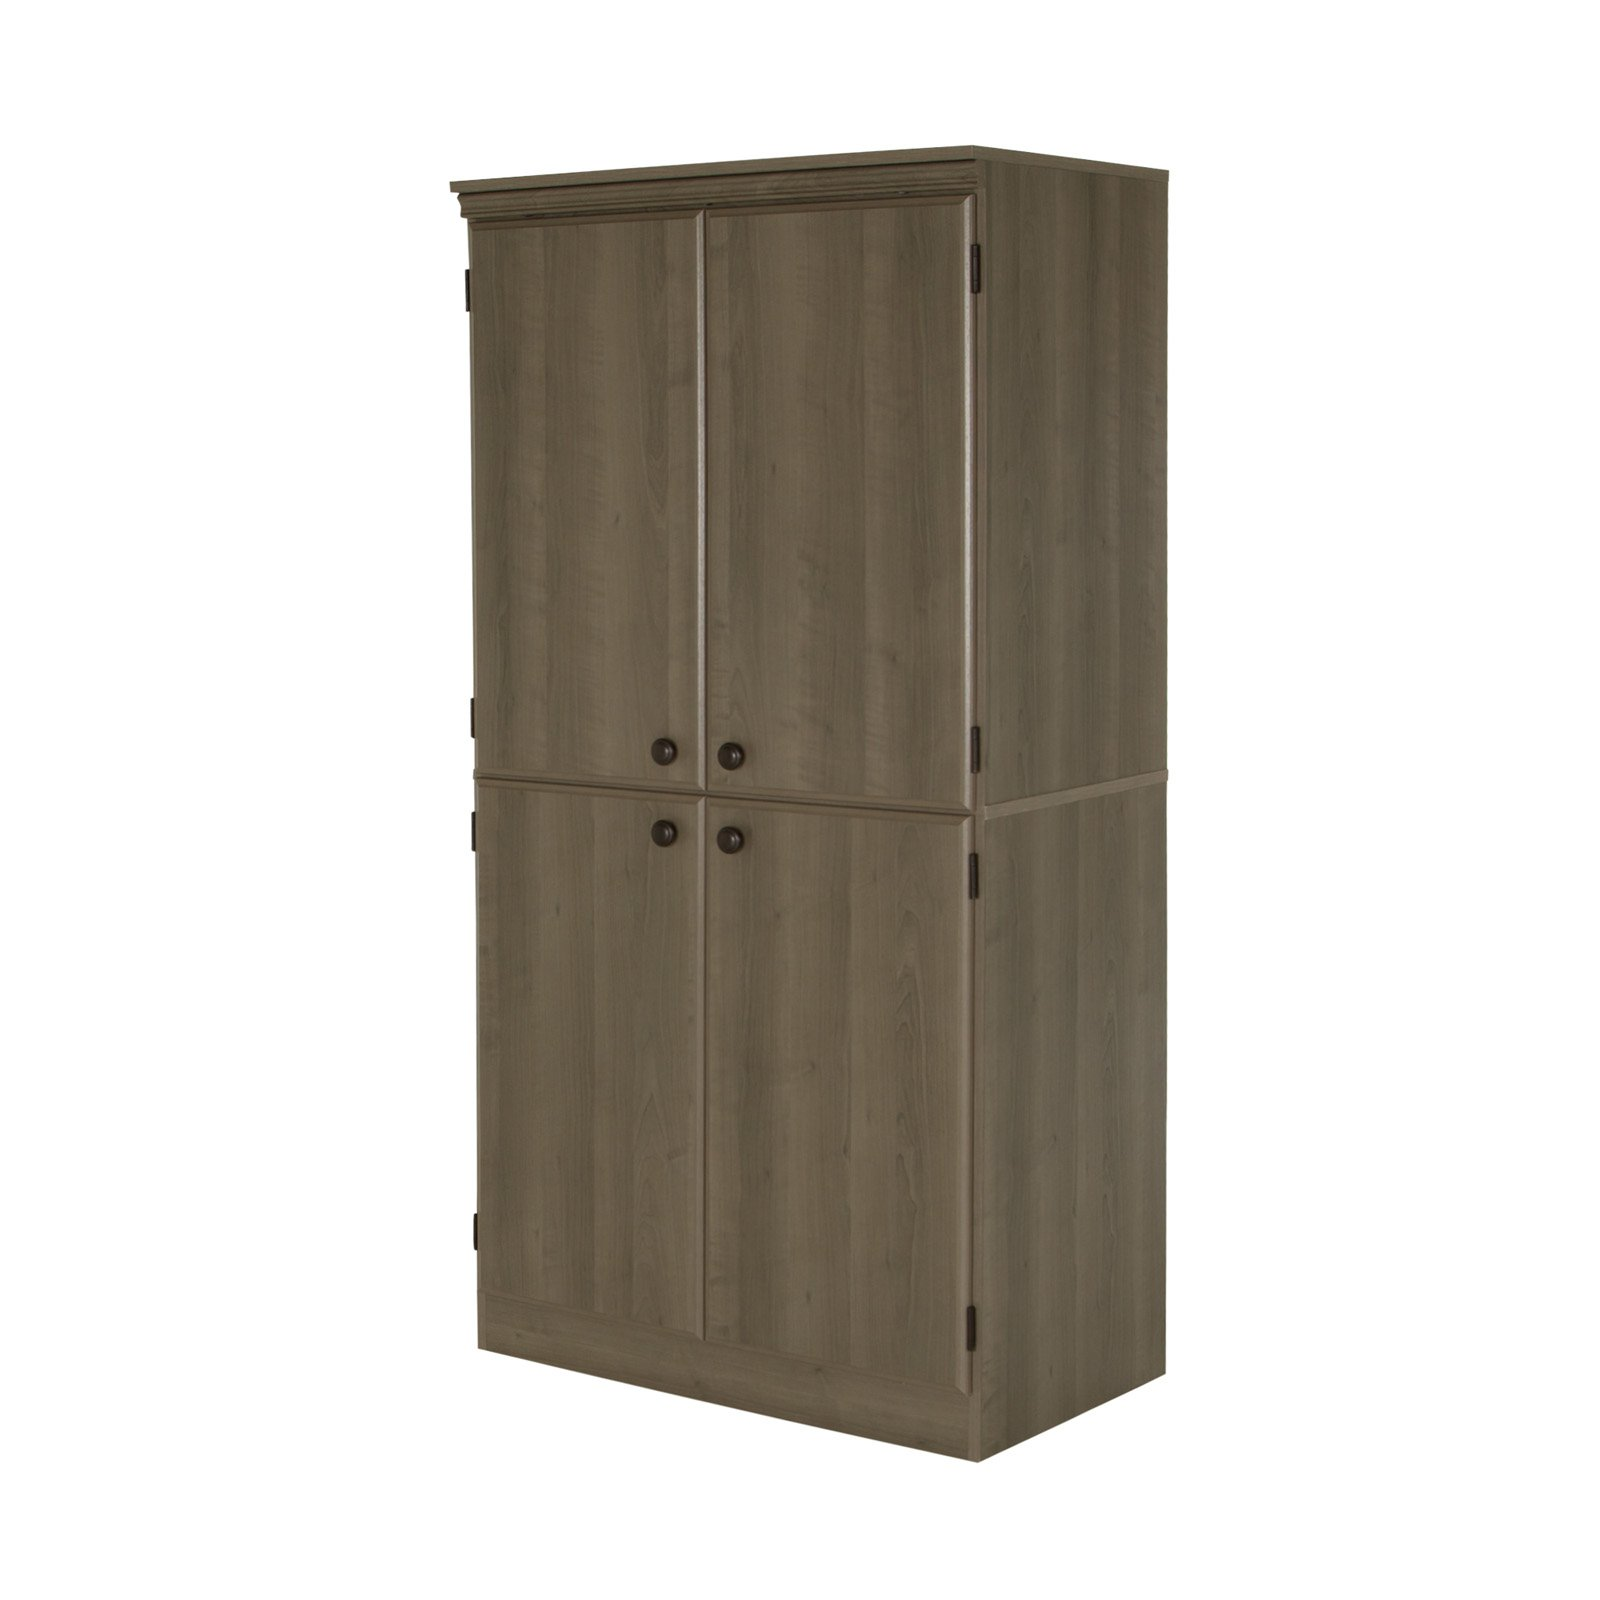 South Shore Morgan 4 Door Storage Cabinet Storage Cabinets Storage Door Storage